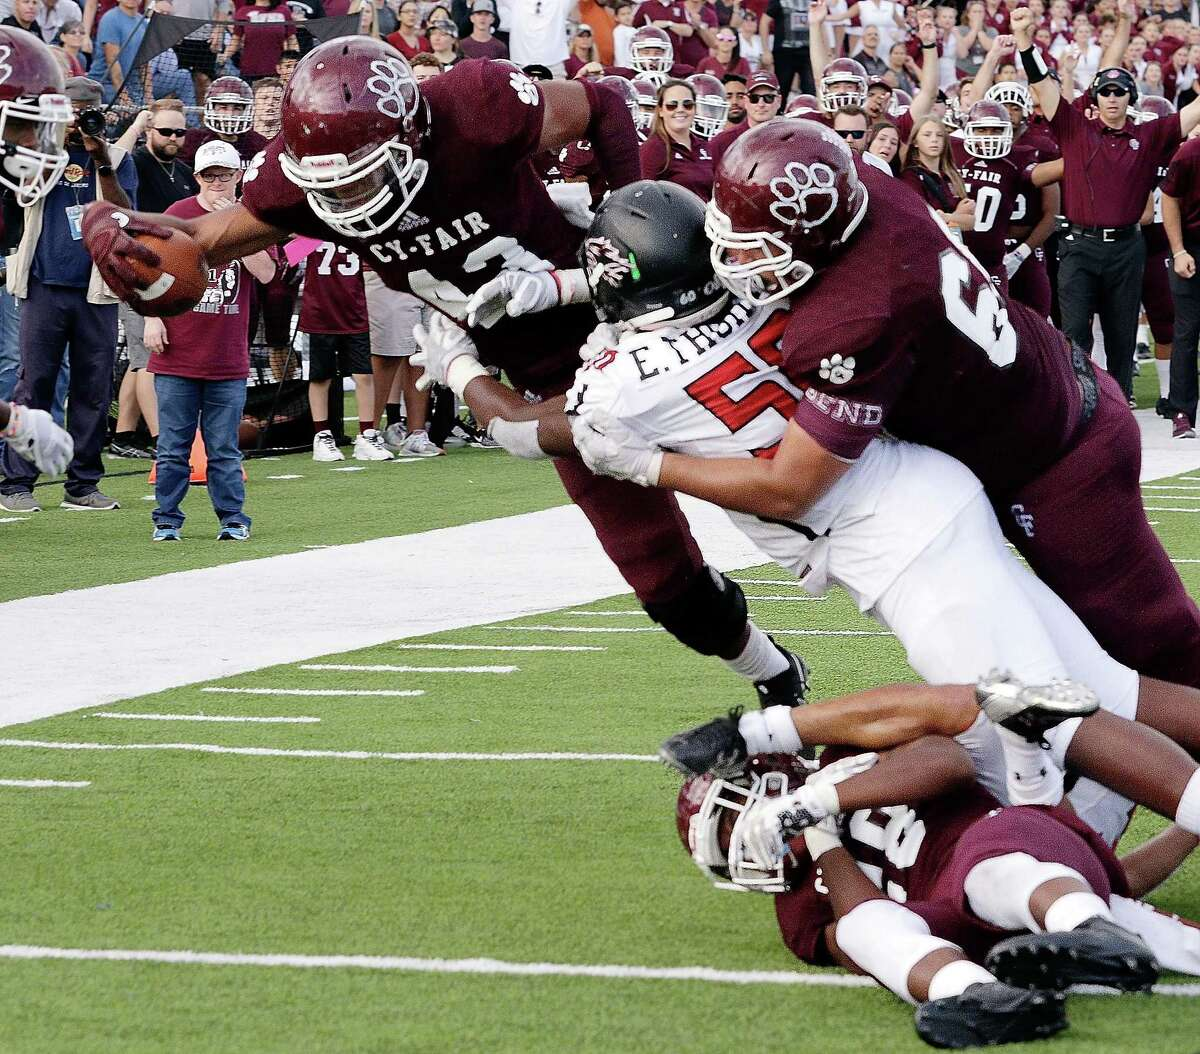 Cy-Fair's Trenton Kennedy (43) dives into the end zone for the game winning touchdown despite Langham Creek's Ernest Thomas (50) during the second half of their game Saturday, Nov. 11, 2017, in Houston, TX. (Michael Wyke / For the Chronicle)